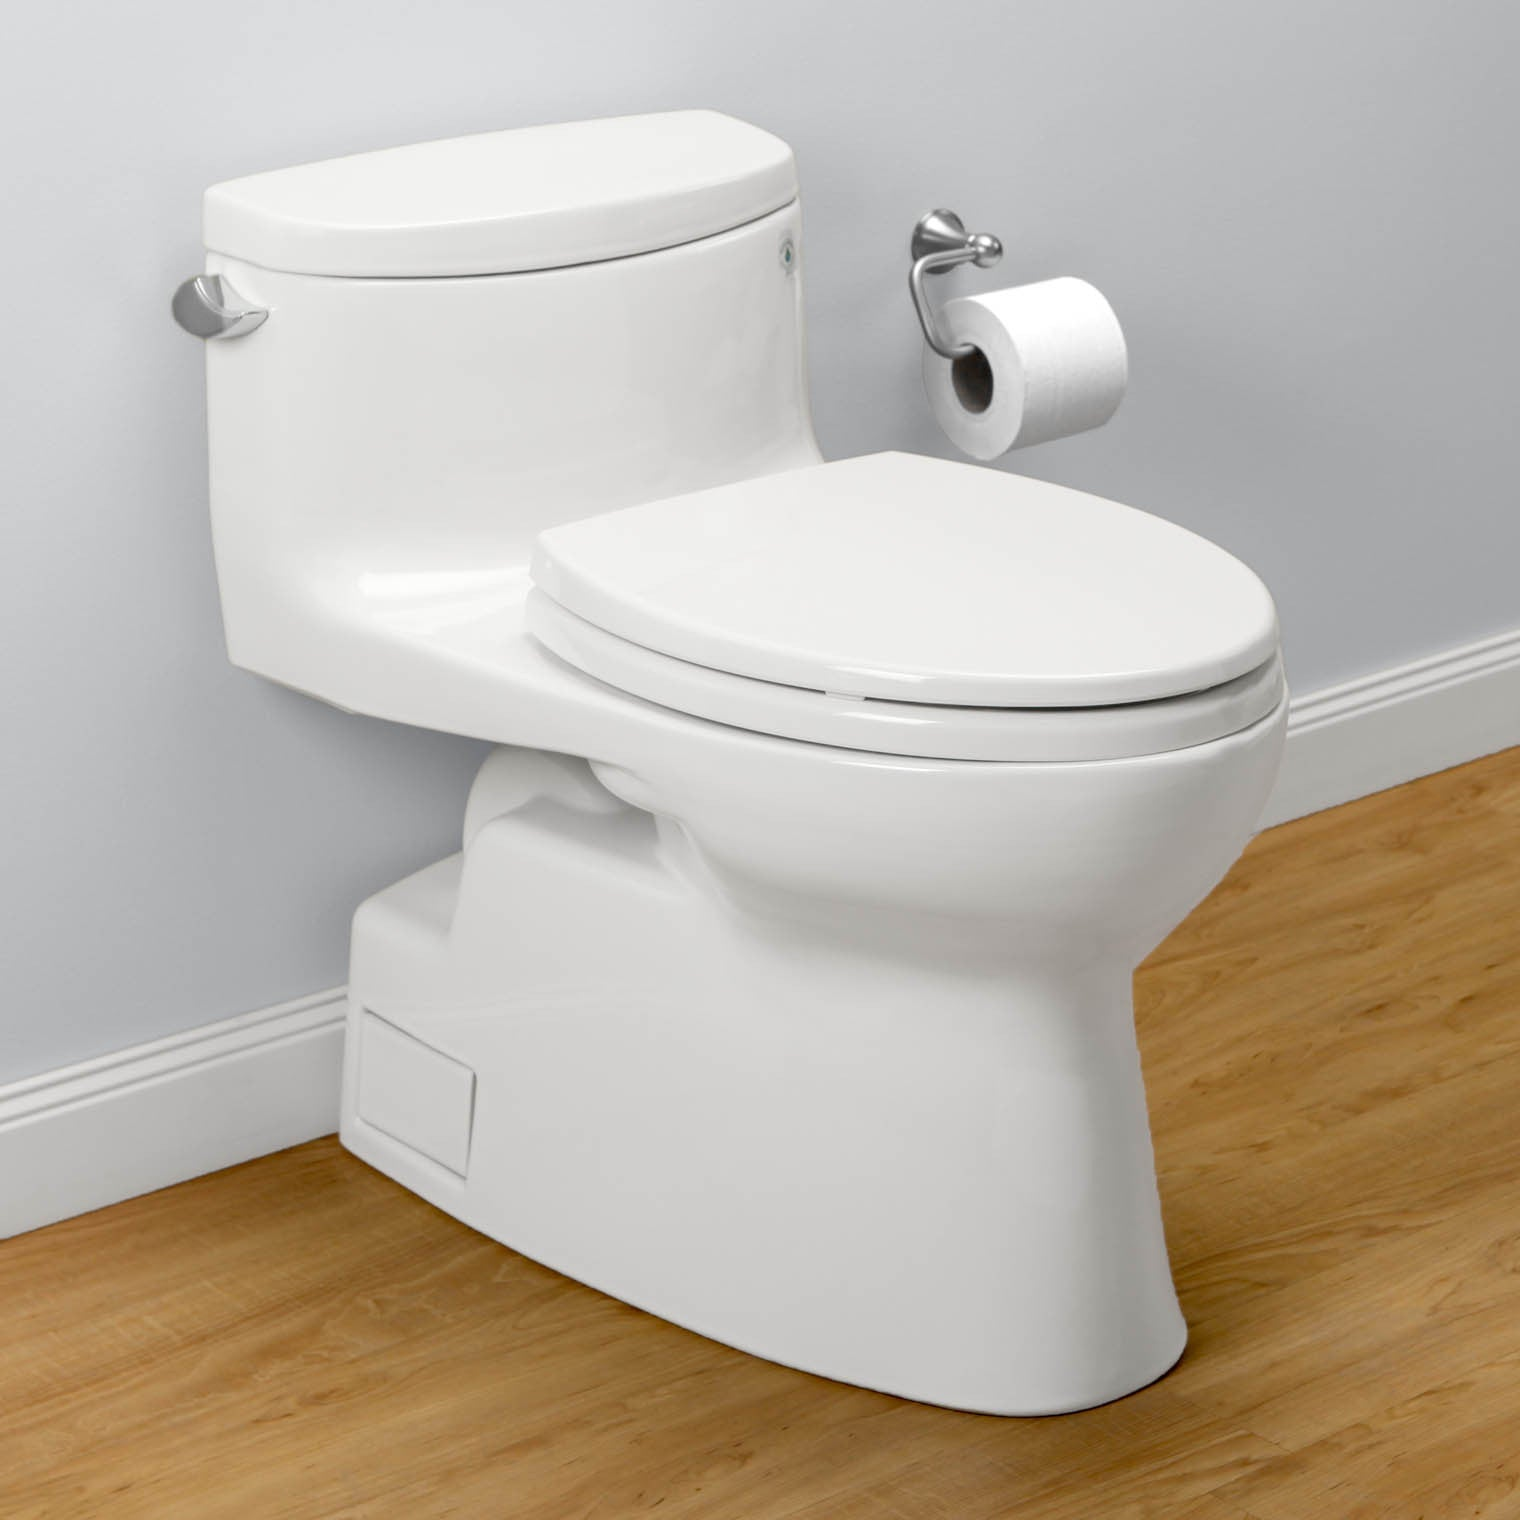 Parts For Toto Toilet Decors - Osbdata.com